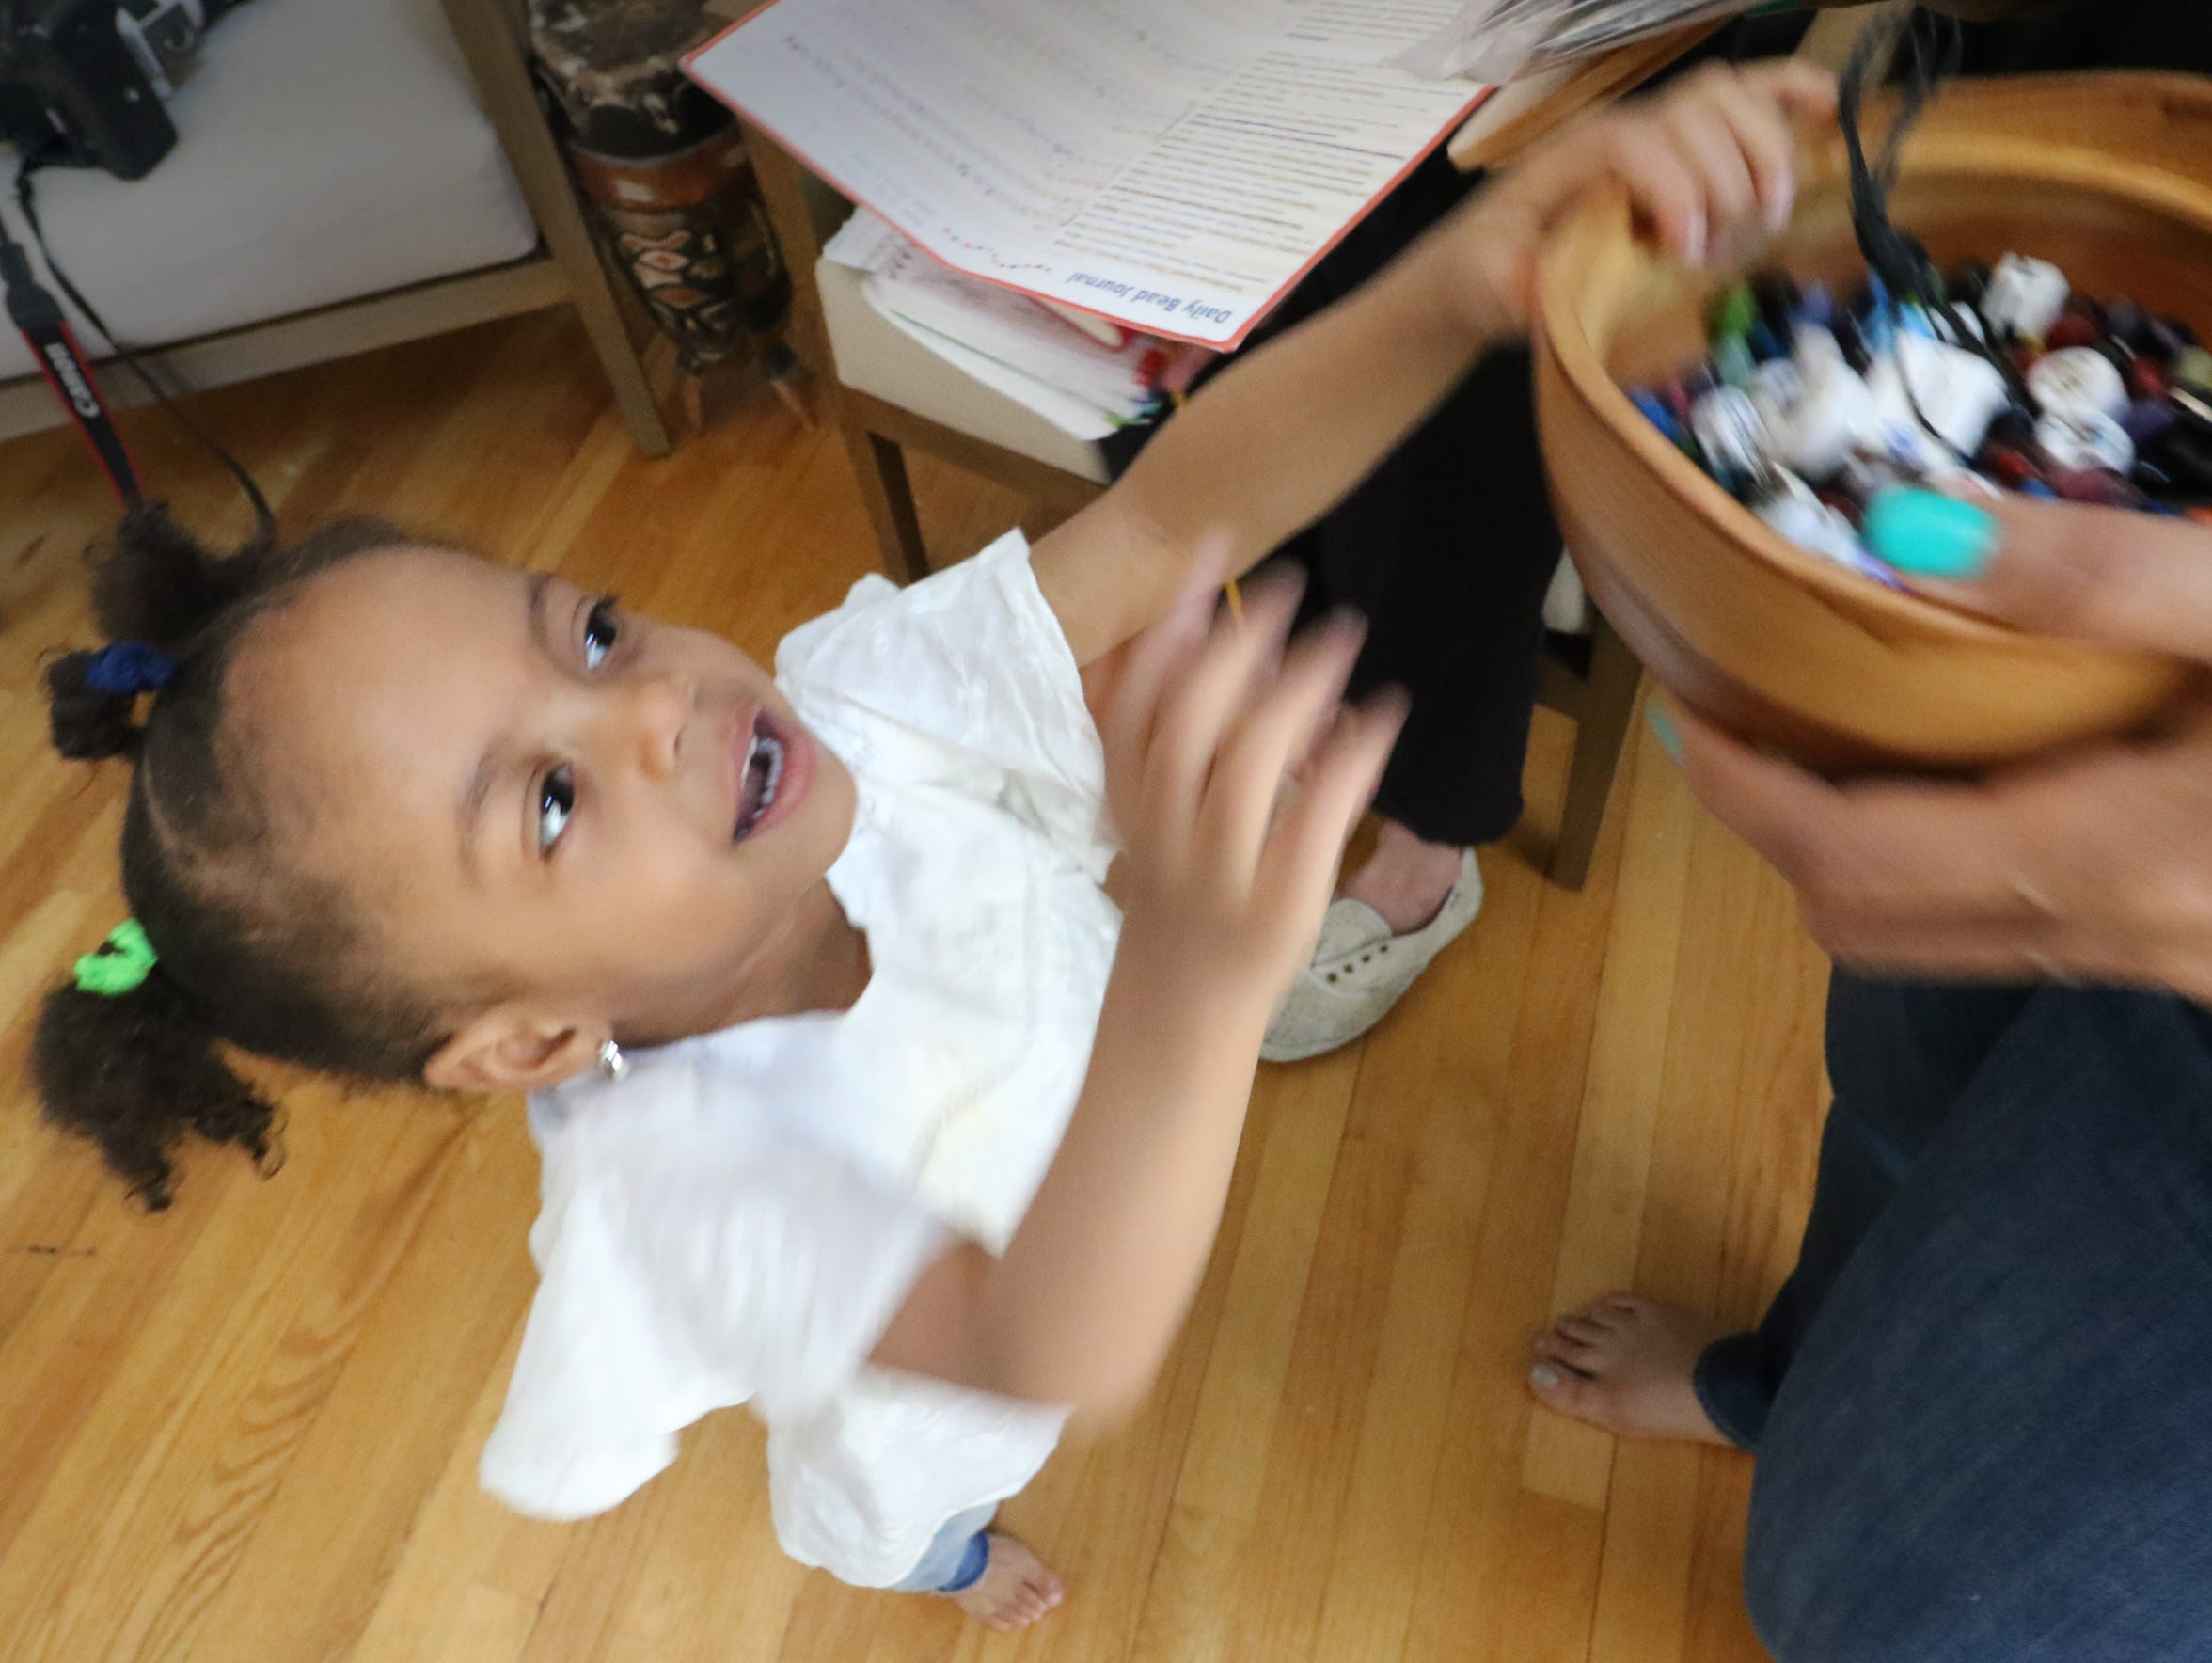 Evelyn Islam, 2, reaches for the bowl that her mother